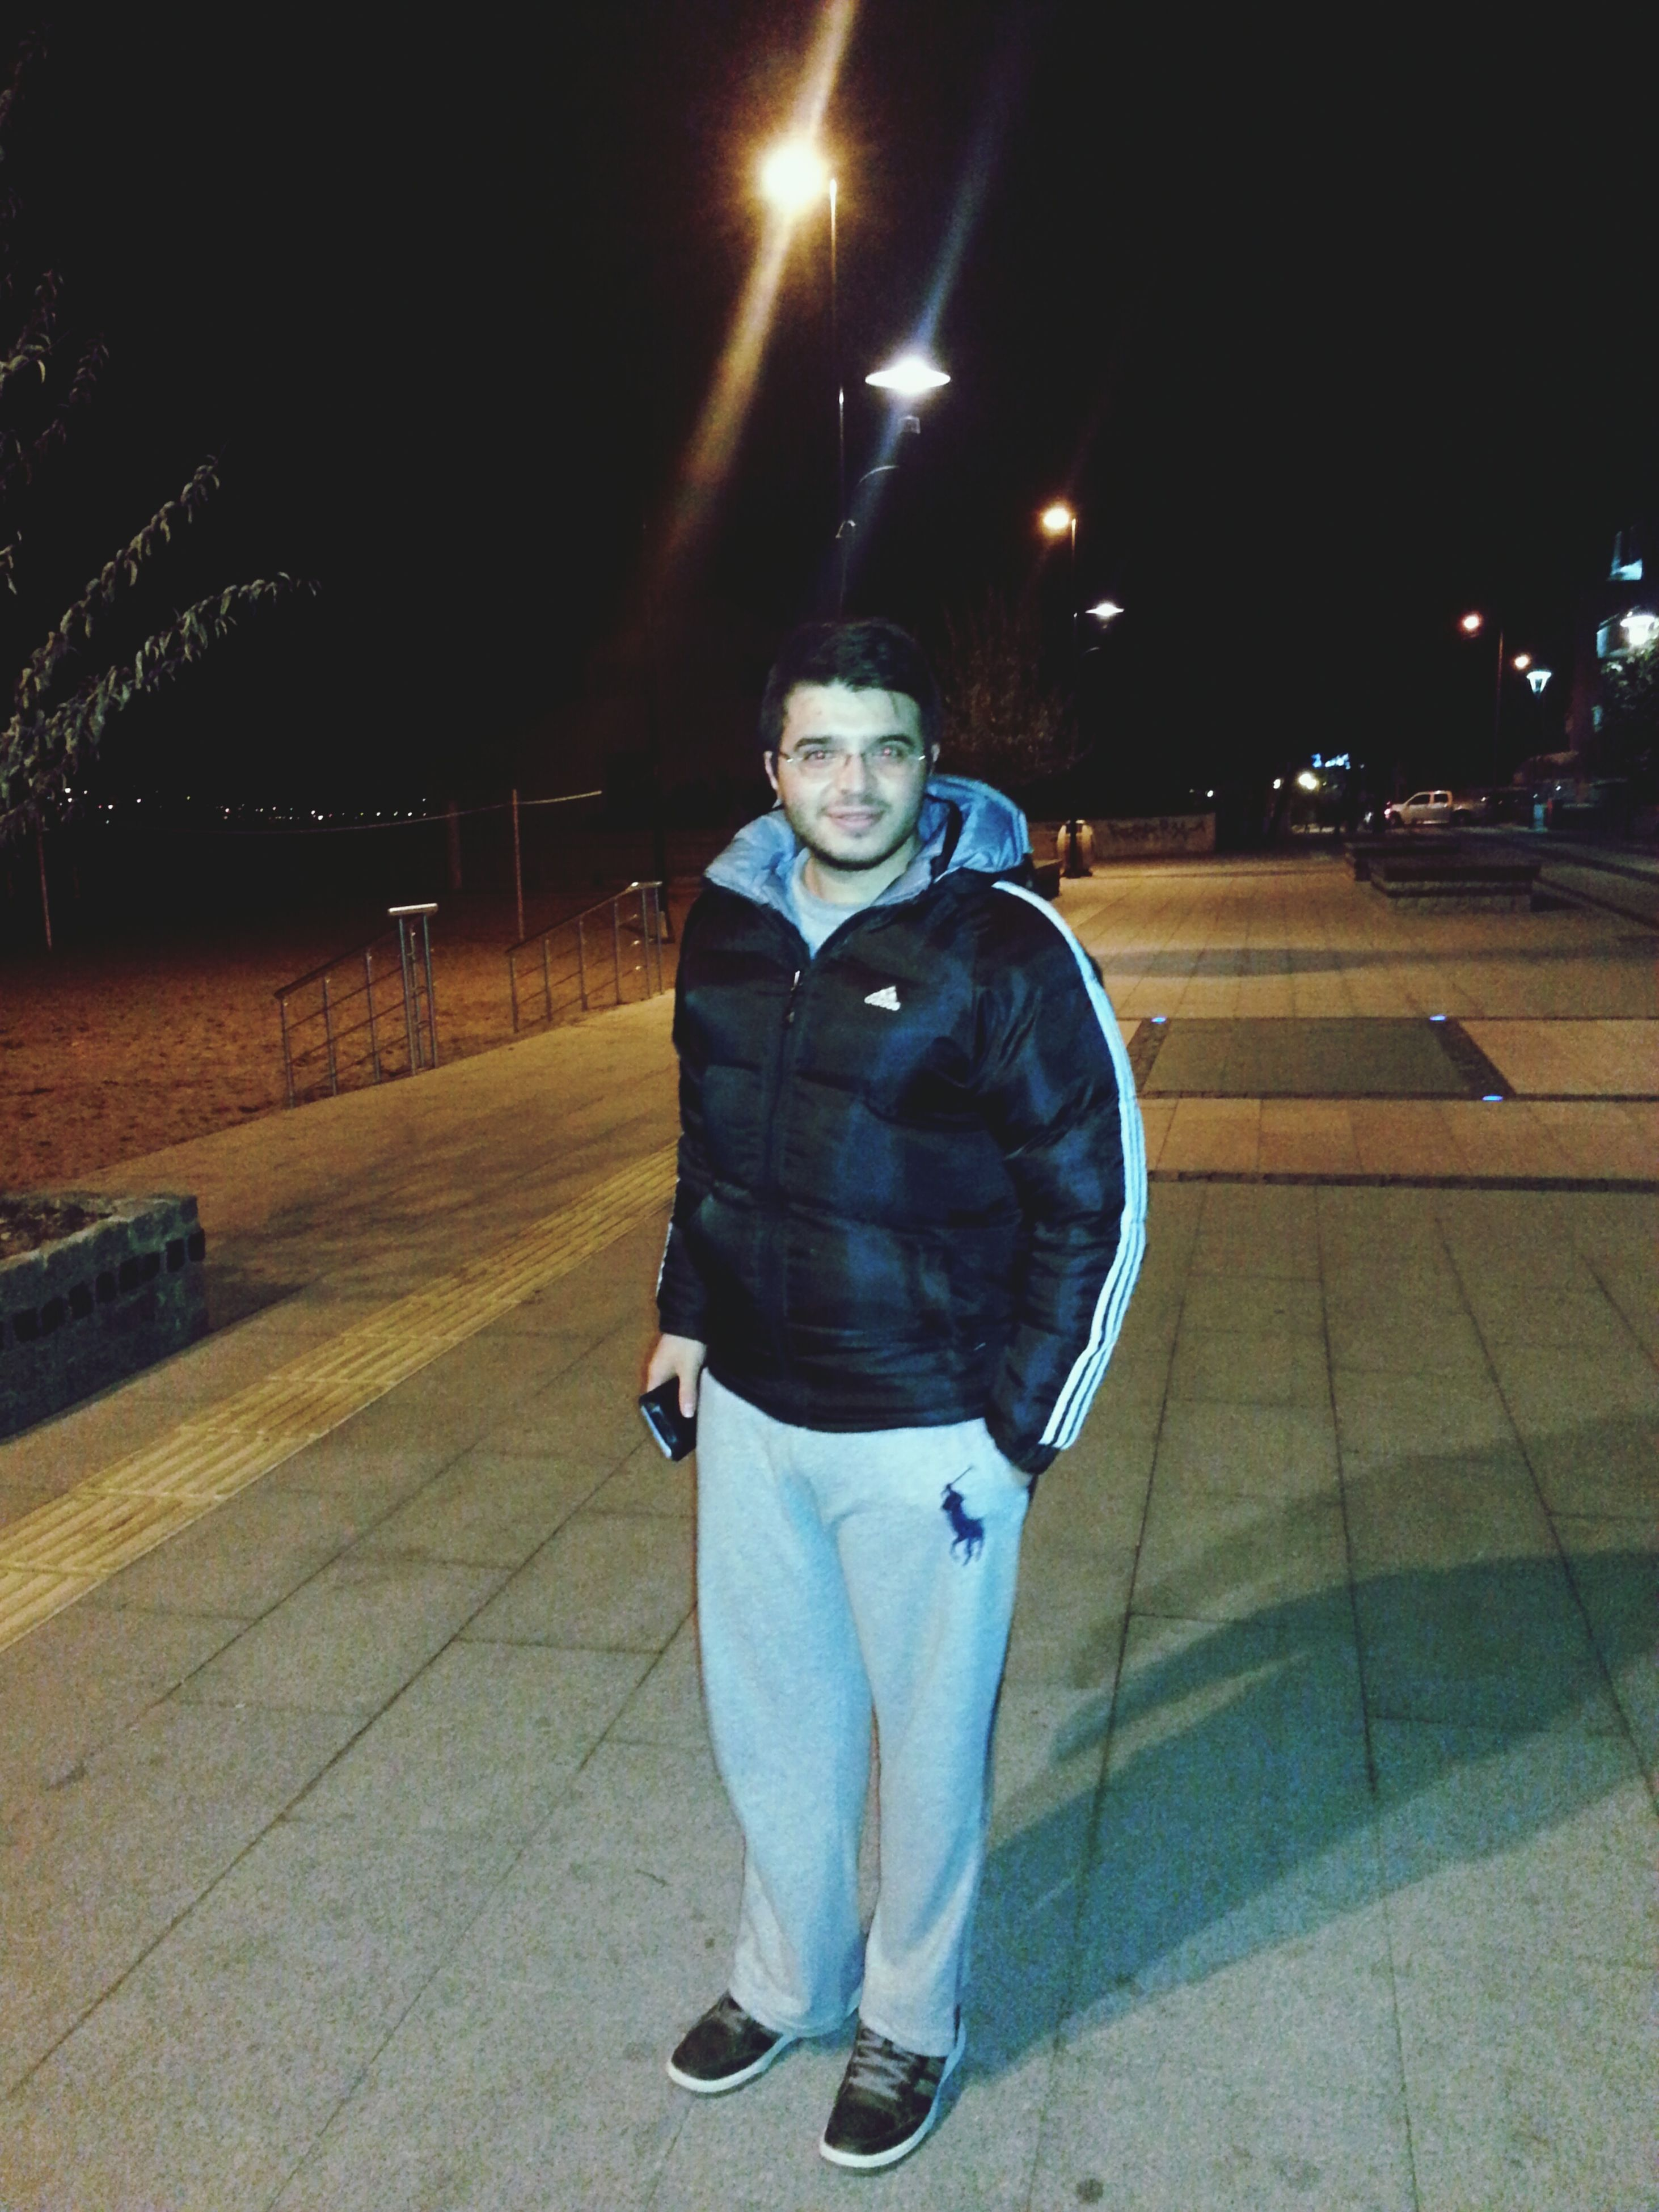 night, illuminated, full length, lifestyles, street, casual clothing, leisure activity, standing, rear view, front view, walking, men, road, outdoors, transportation, sidewalk, incidental people, holding